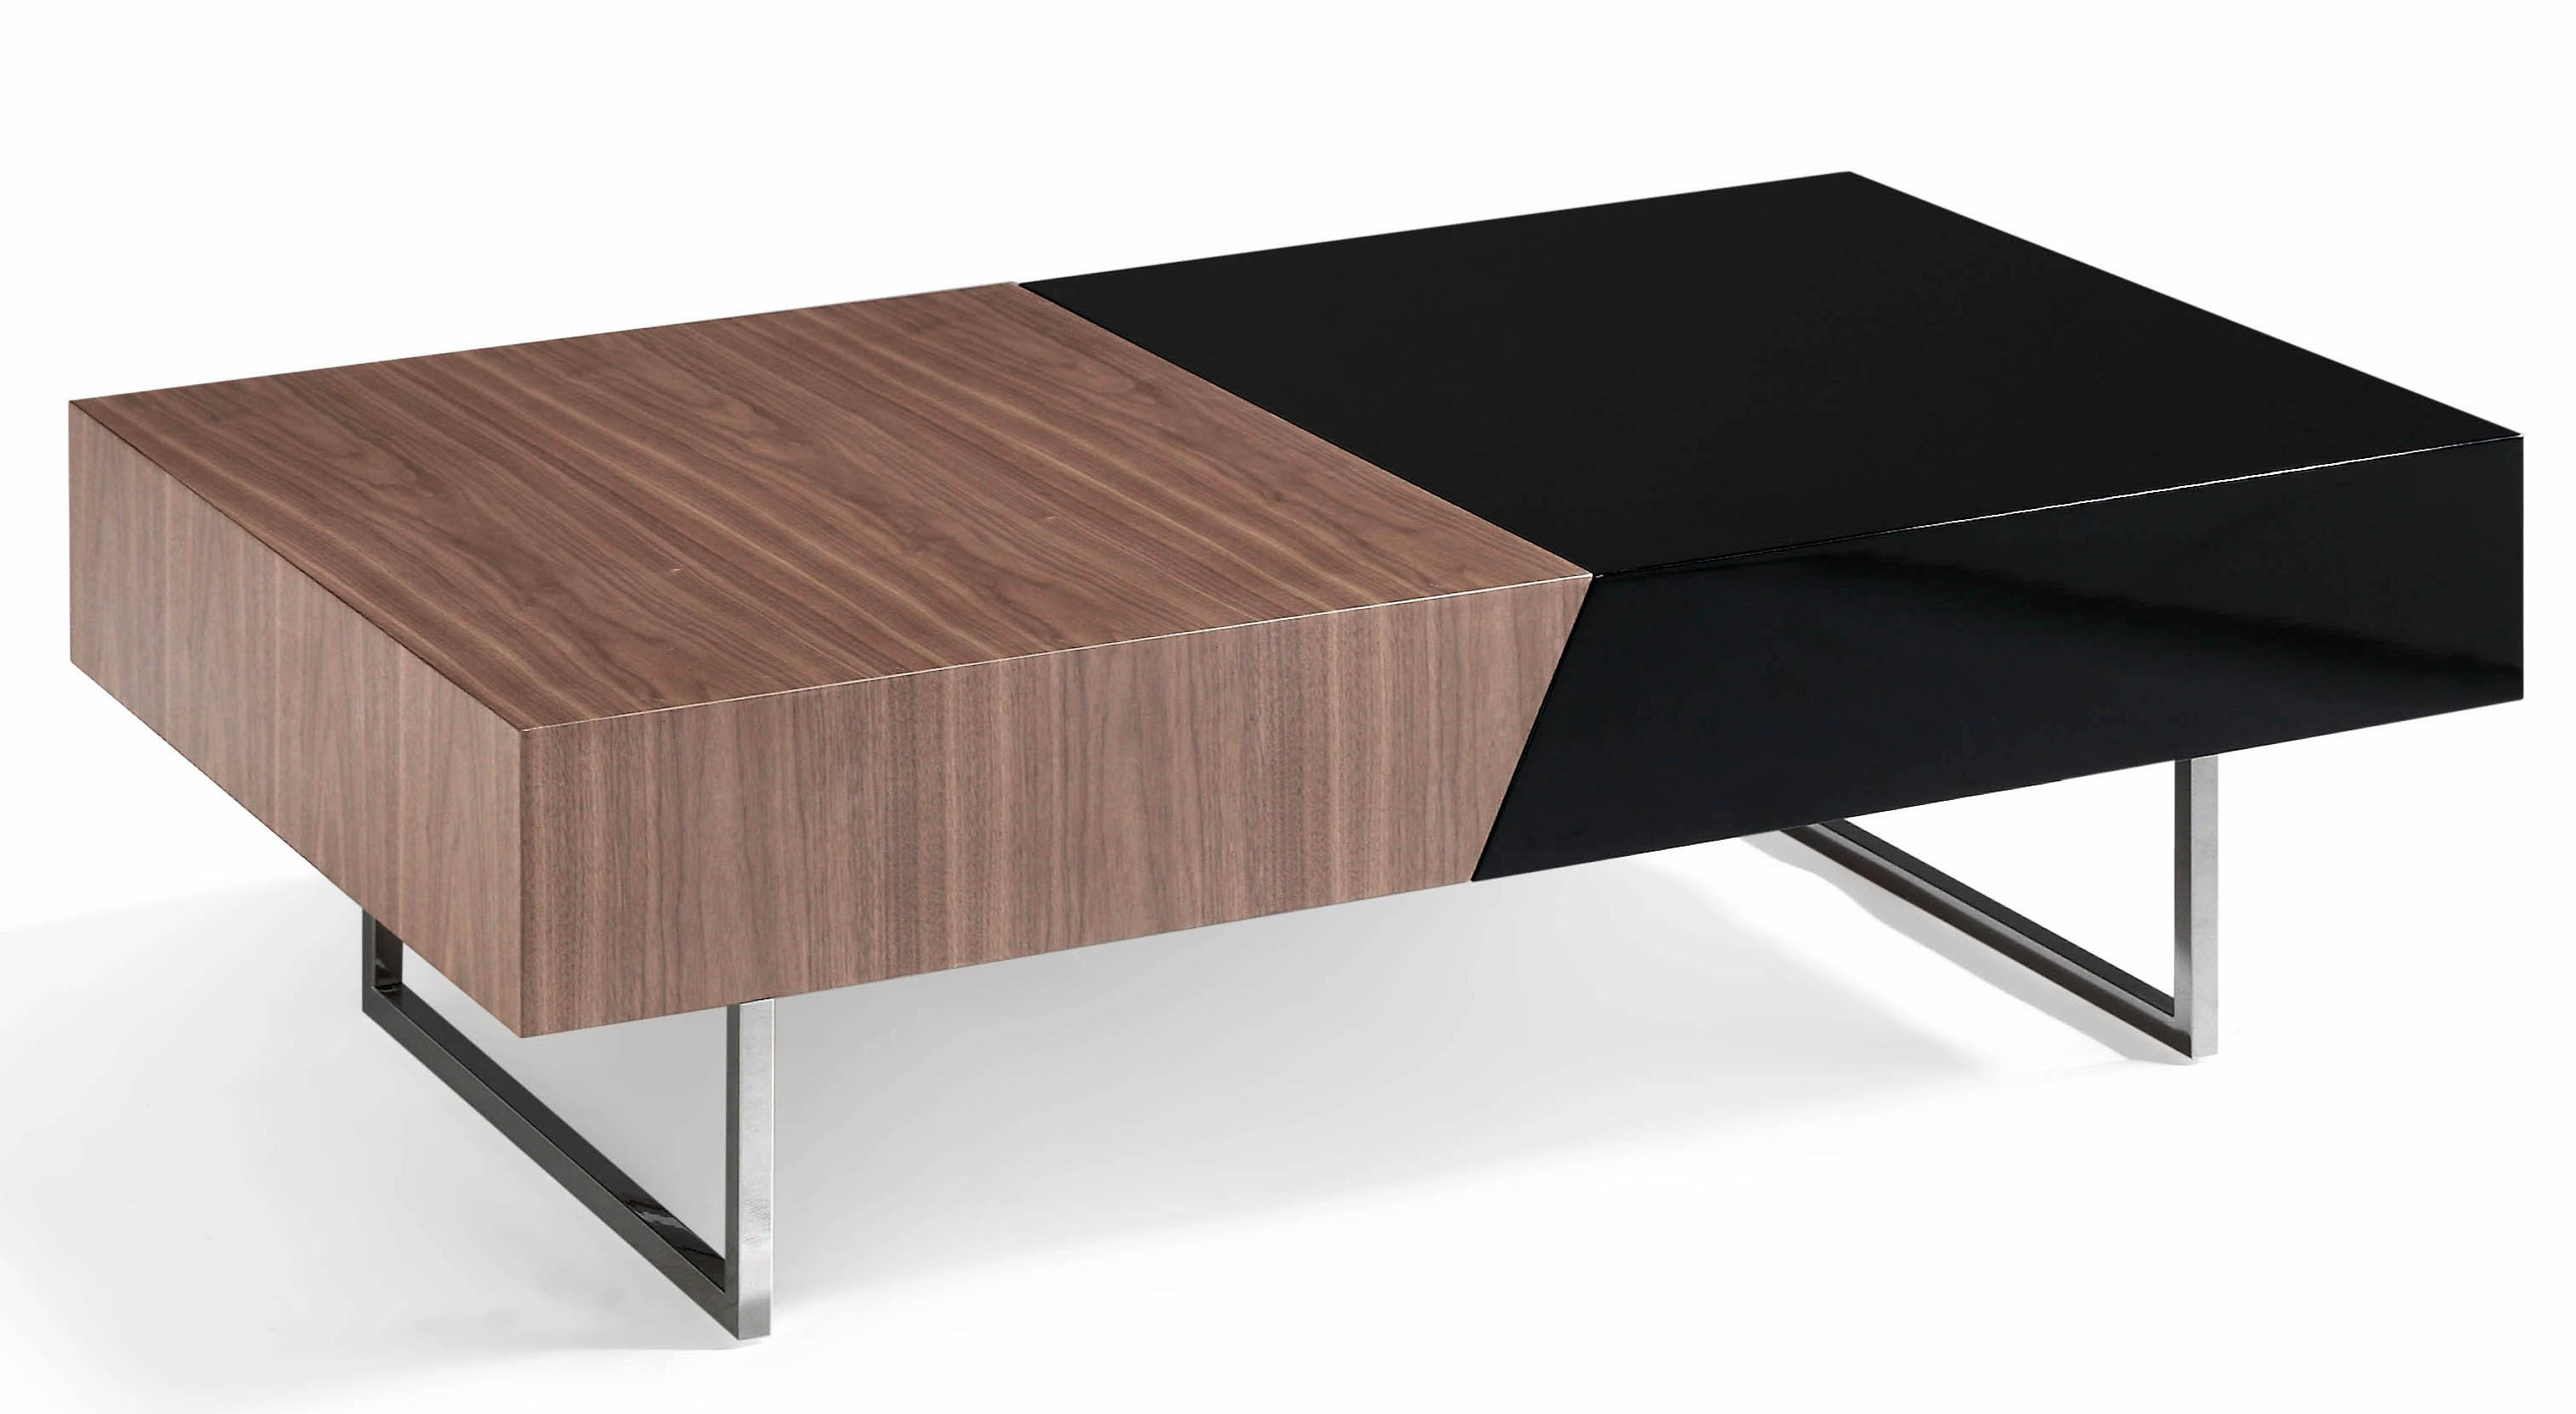 table basse plateau coulissant bois noyer et laqu roma couleur blanc. Black Bedroom Furniture Sets. Home Design Ideas